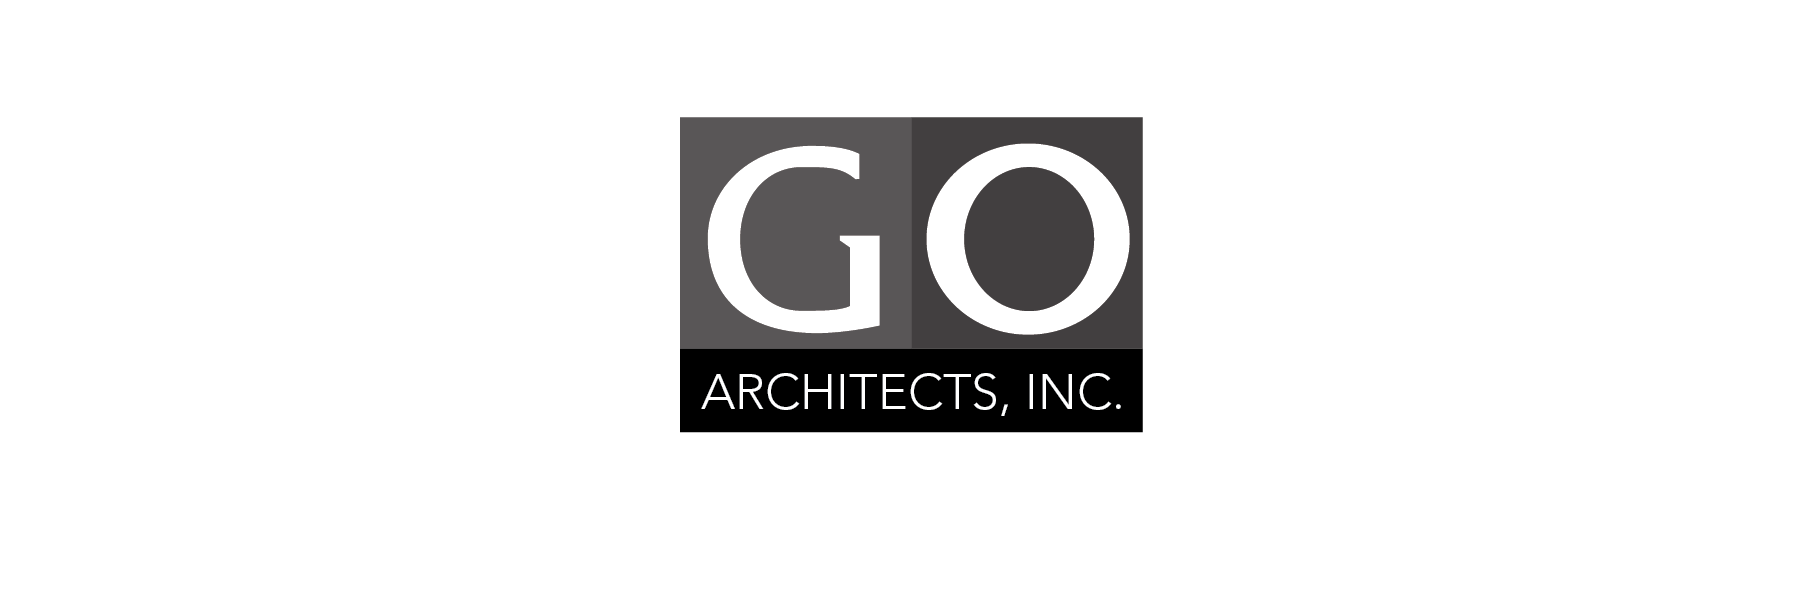 GO-Arch-01.png